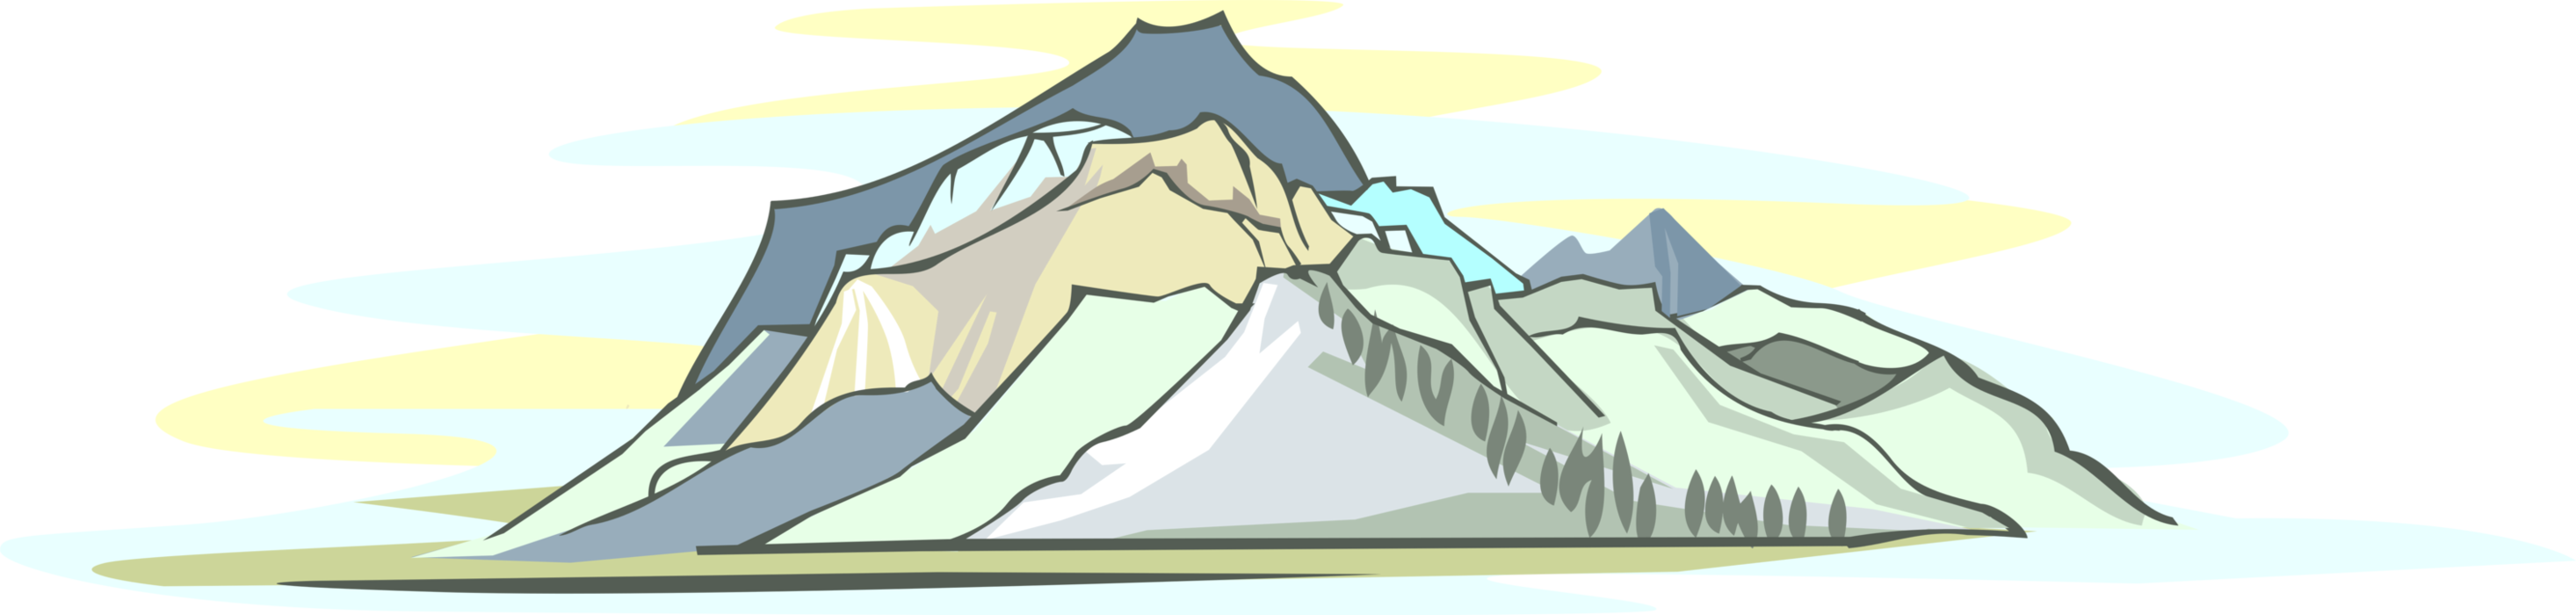 Vector Illustration of Mountain Peaks in the Distance